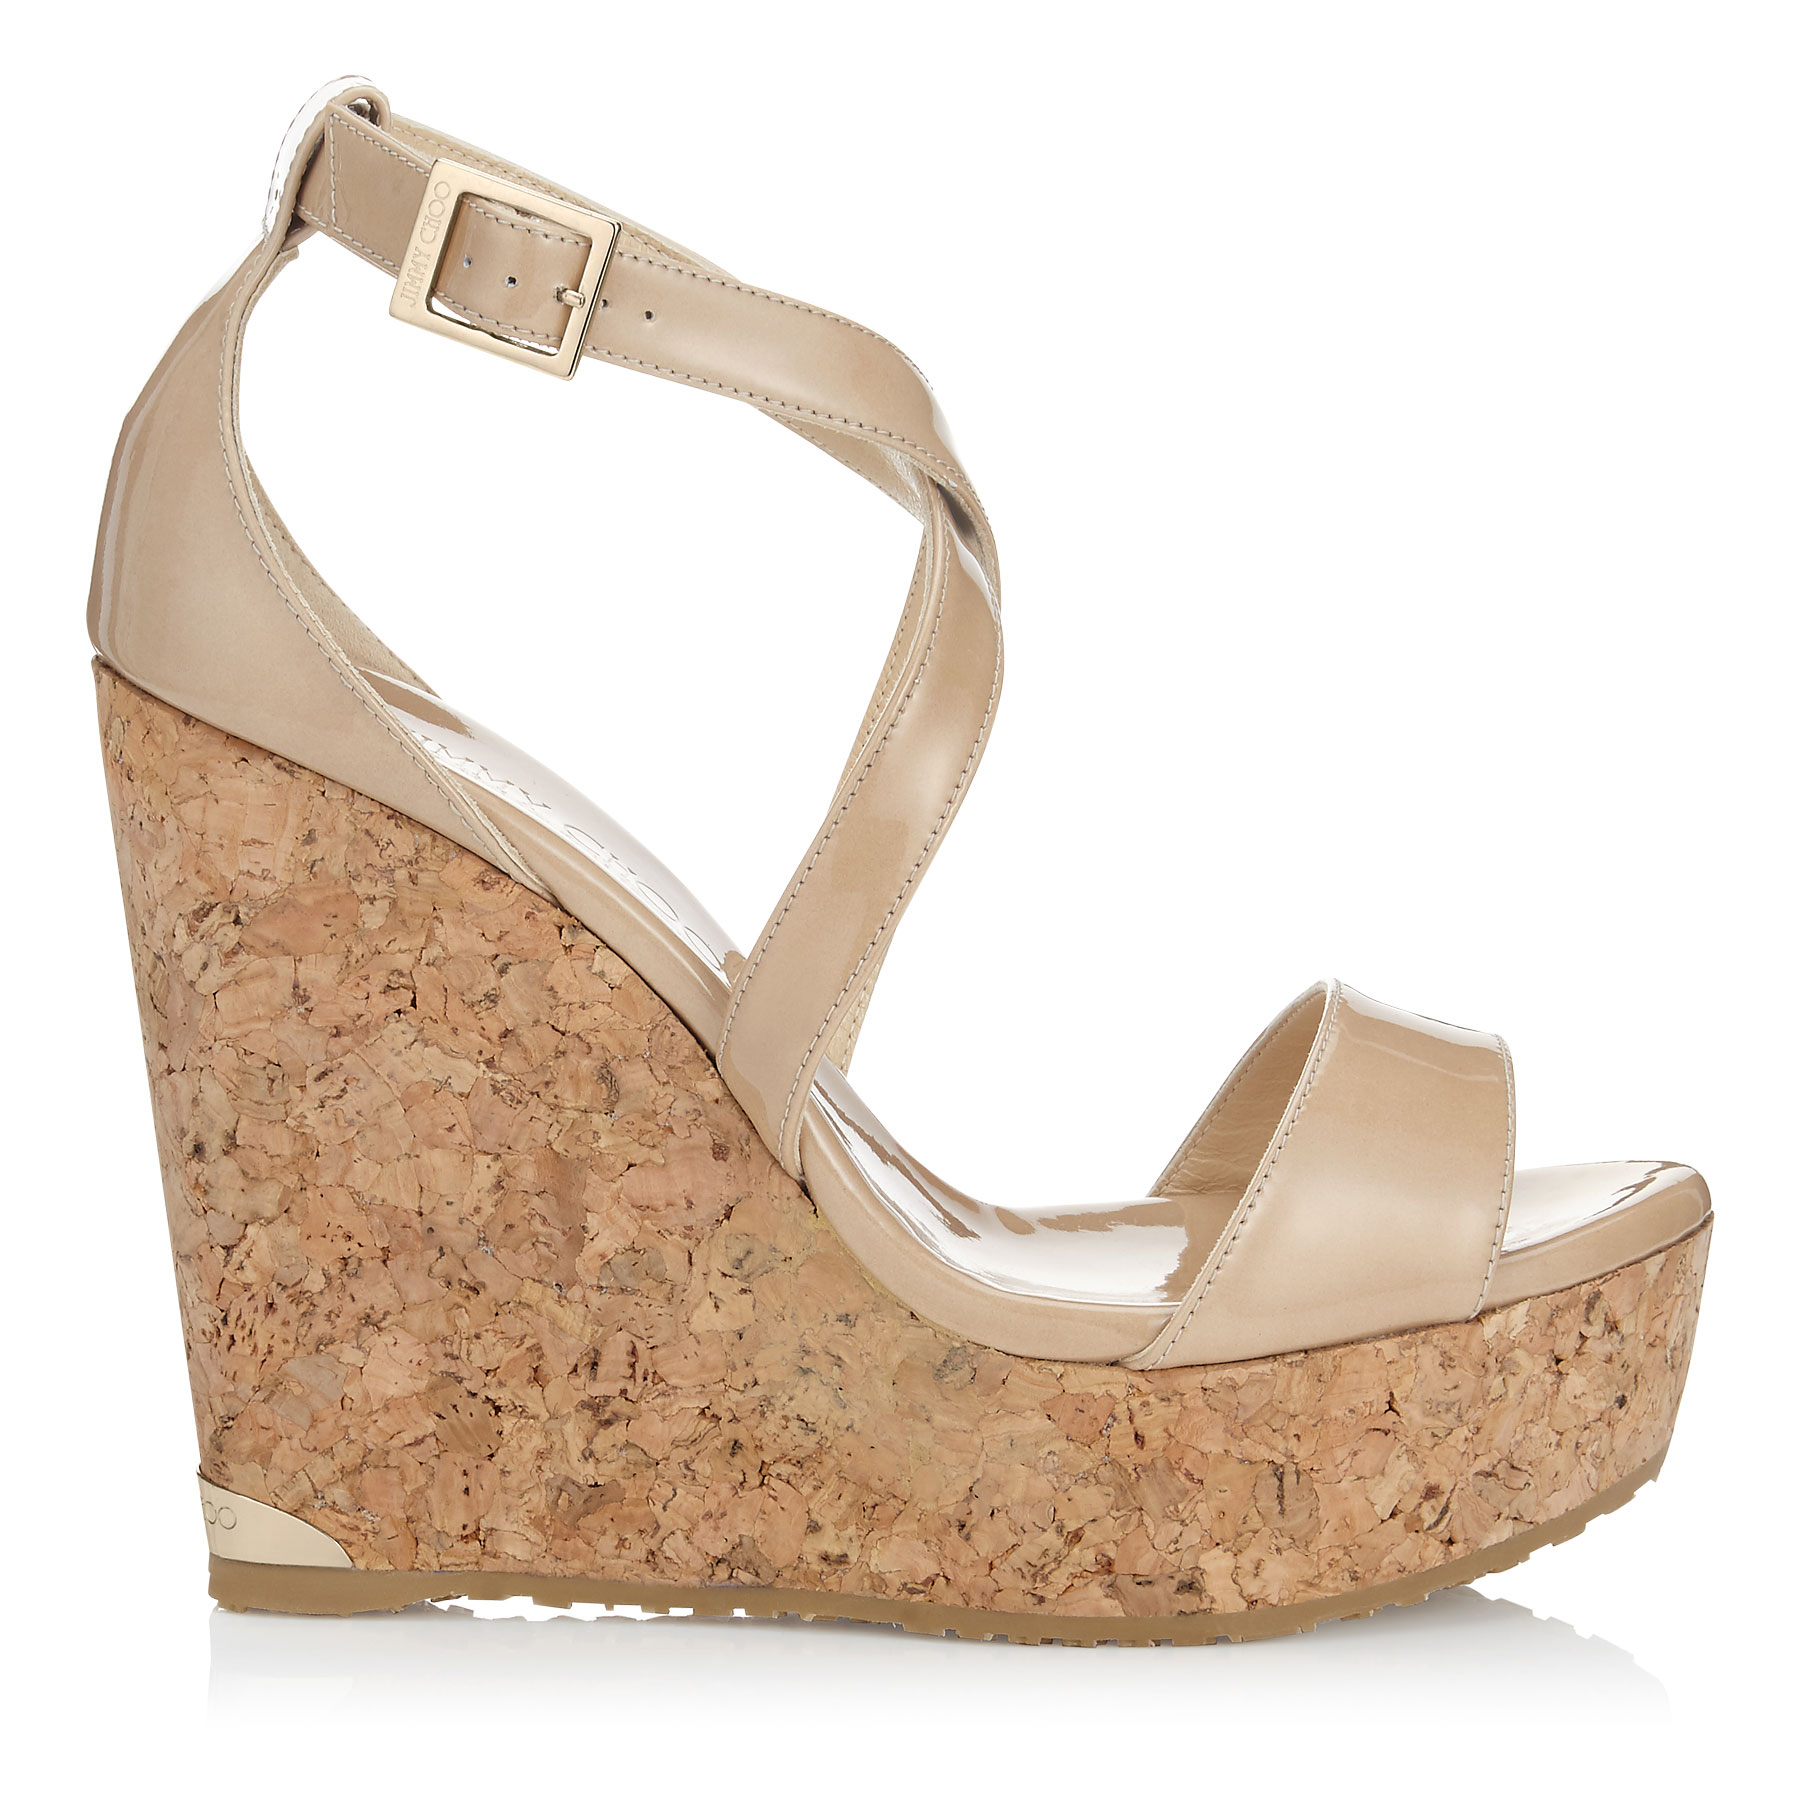 PORTIA 120 Nude Patent Leather Cork Wedges